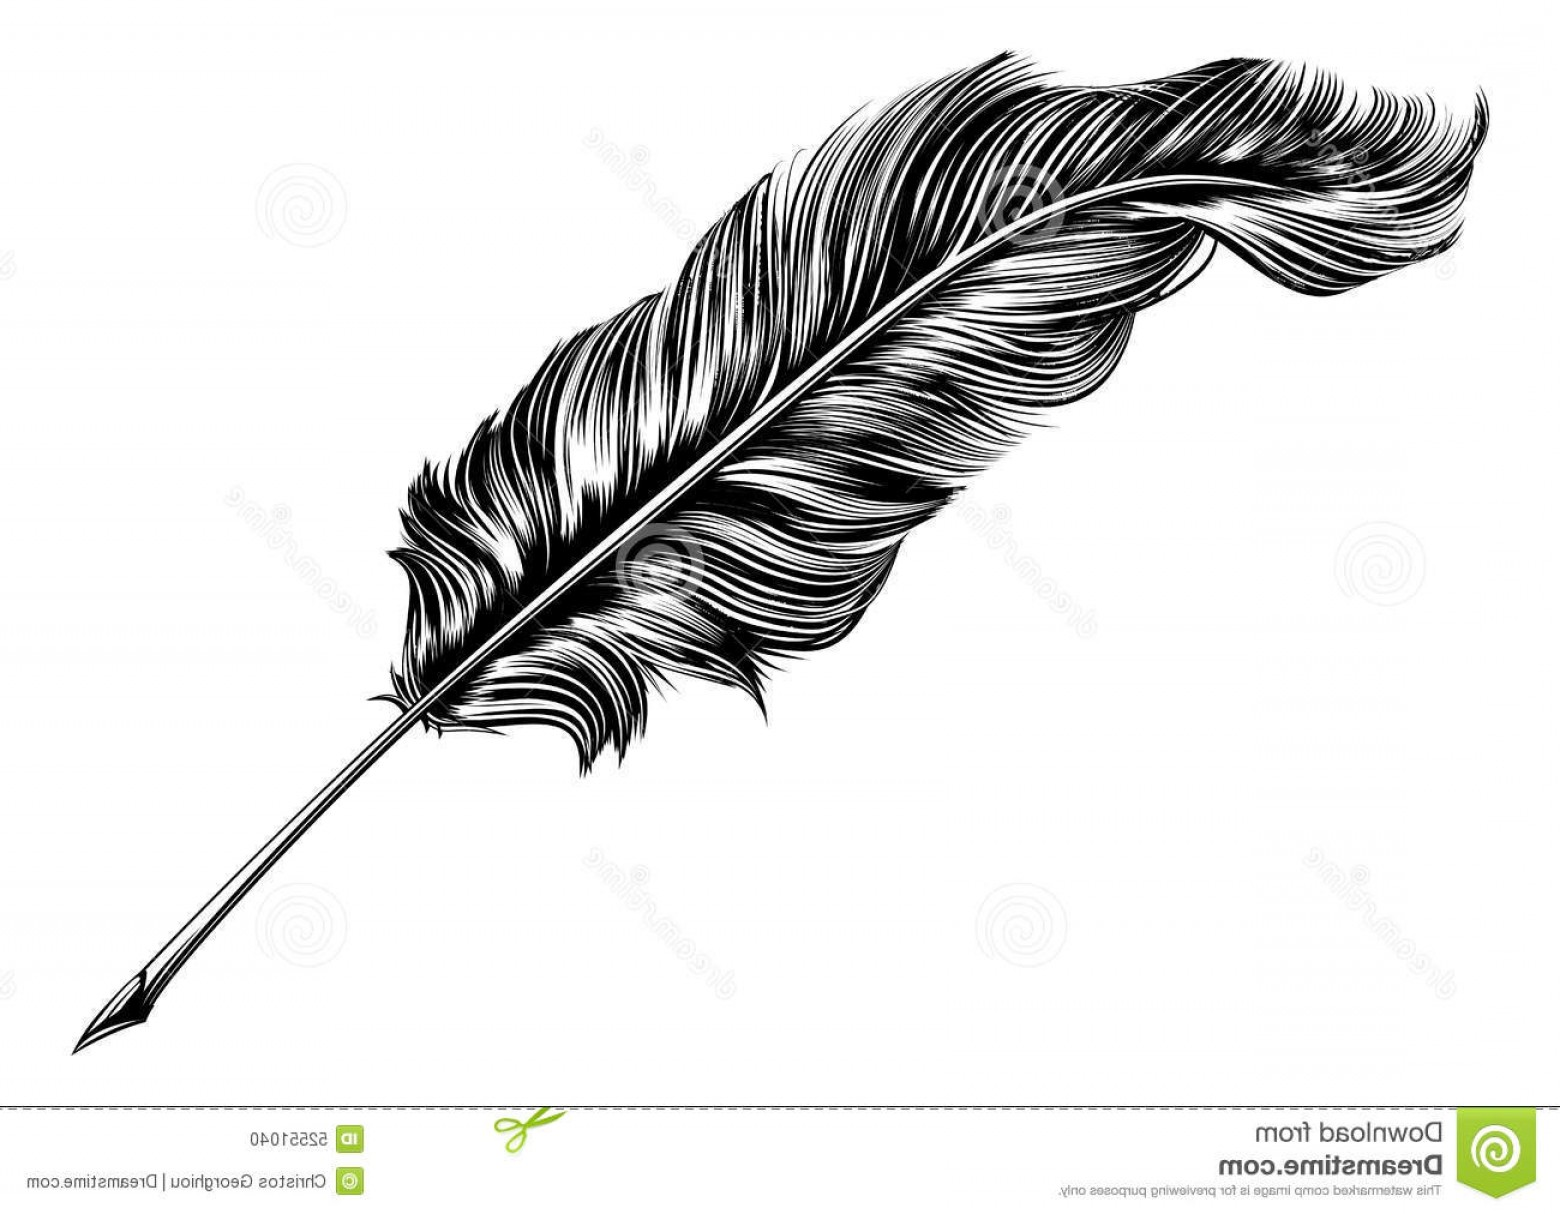 Quill Pen Vector: Stock Illustration Vintage Feather Quill Pen Illustration Original Woodblock Style Image